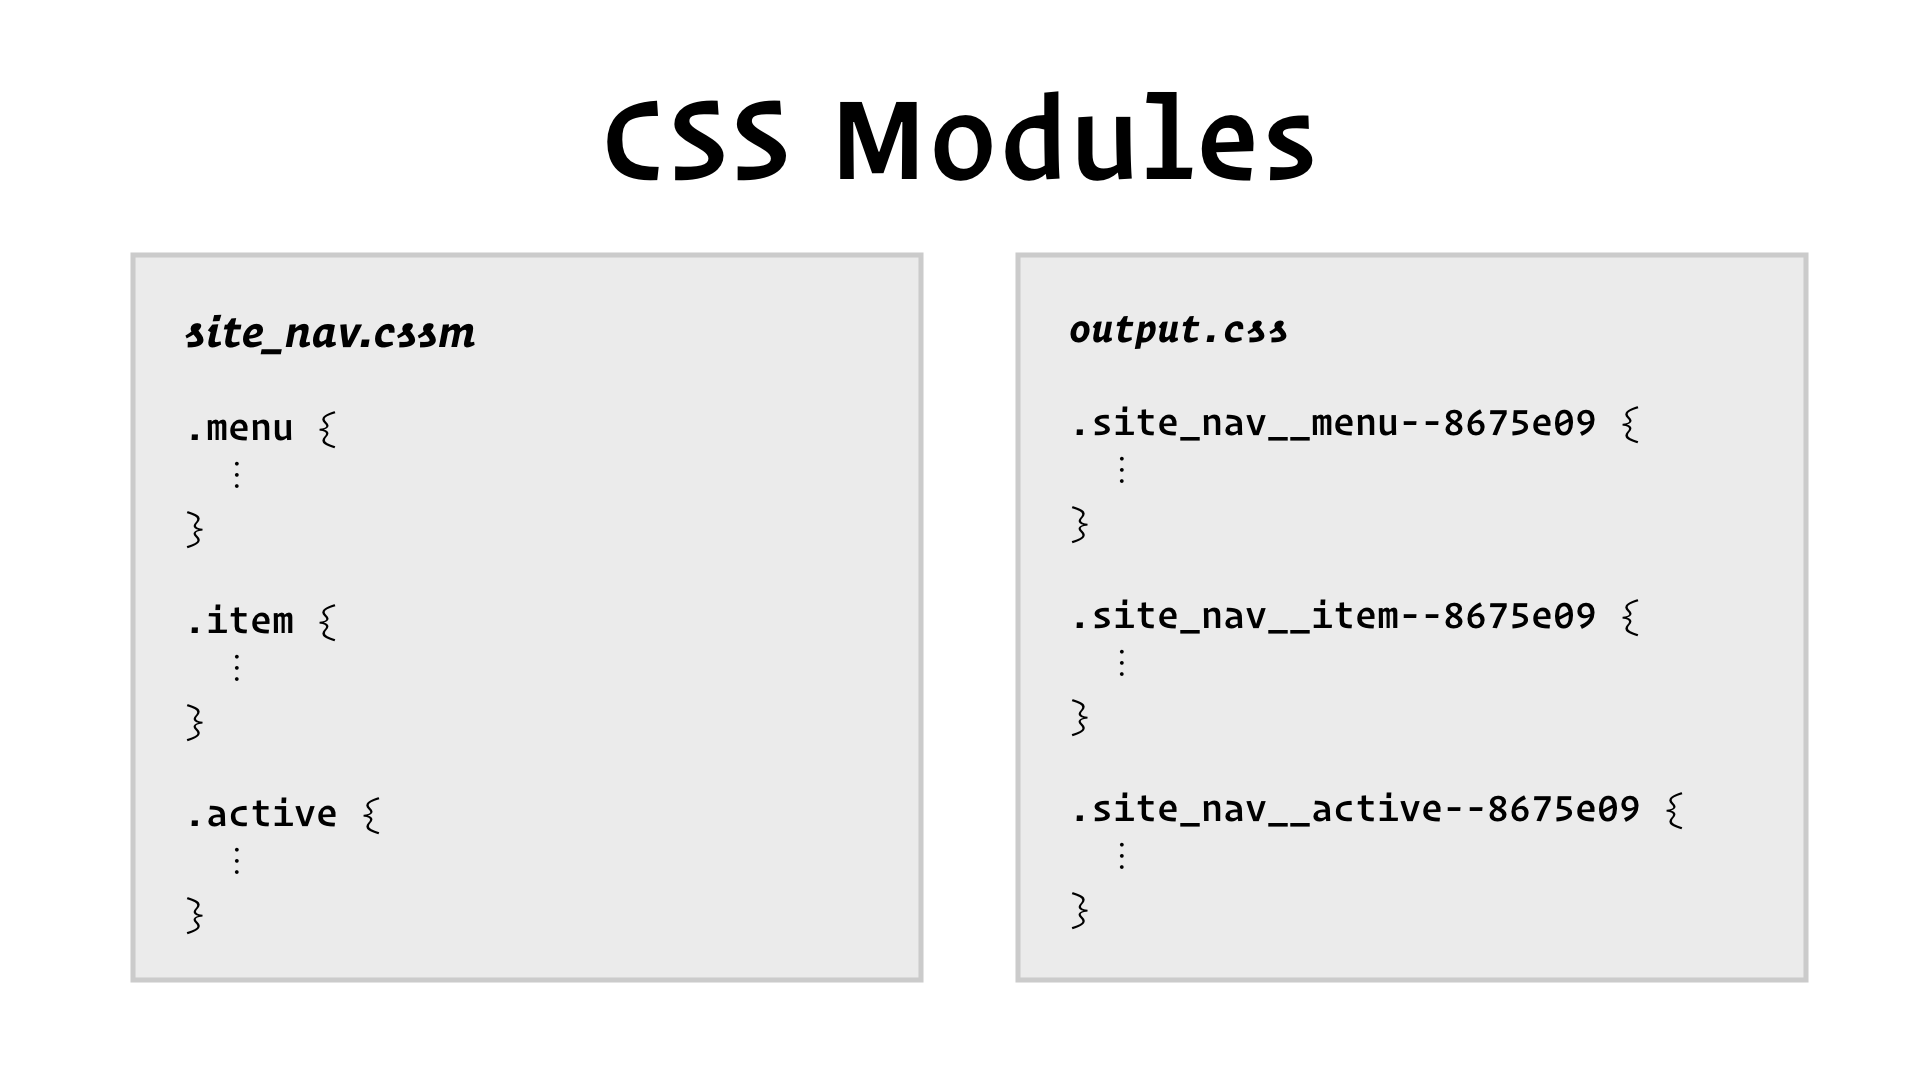 slide: CSS Modules A set of generic class selectors (.menu, .item, .active) in a stylesheet are compiled to unique class names (.site_nav__menu--8675e09, .site_nav__item--8675e09, .site_nav__active--8675e09